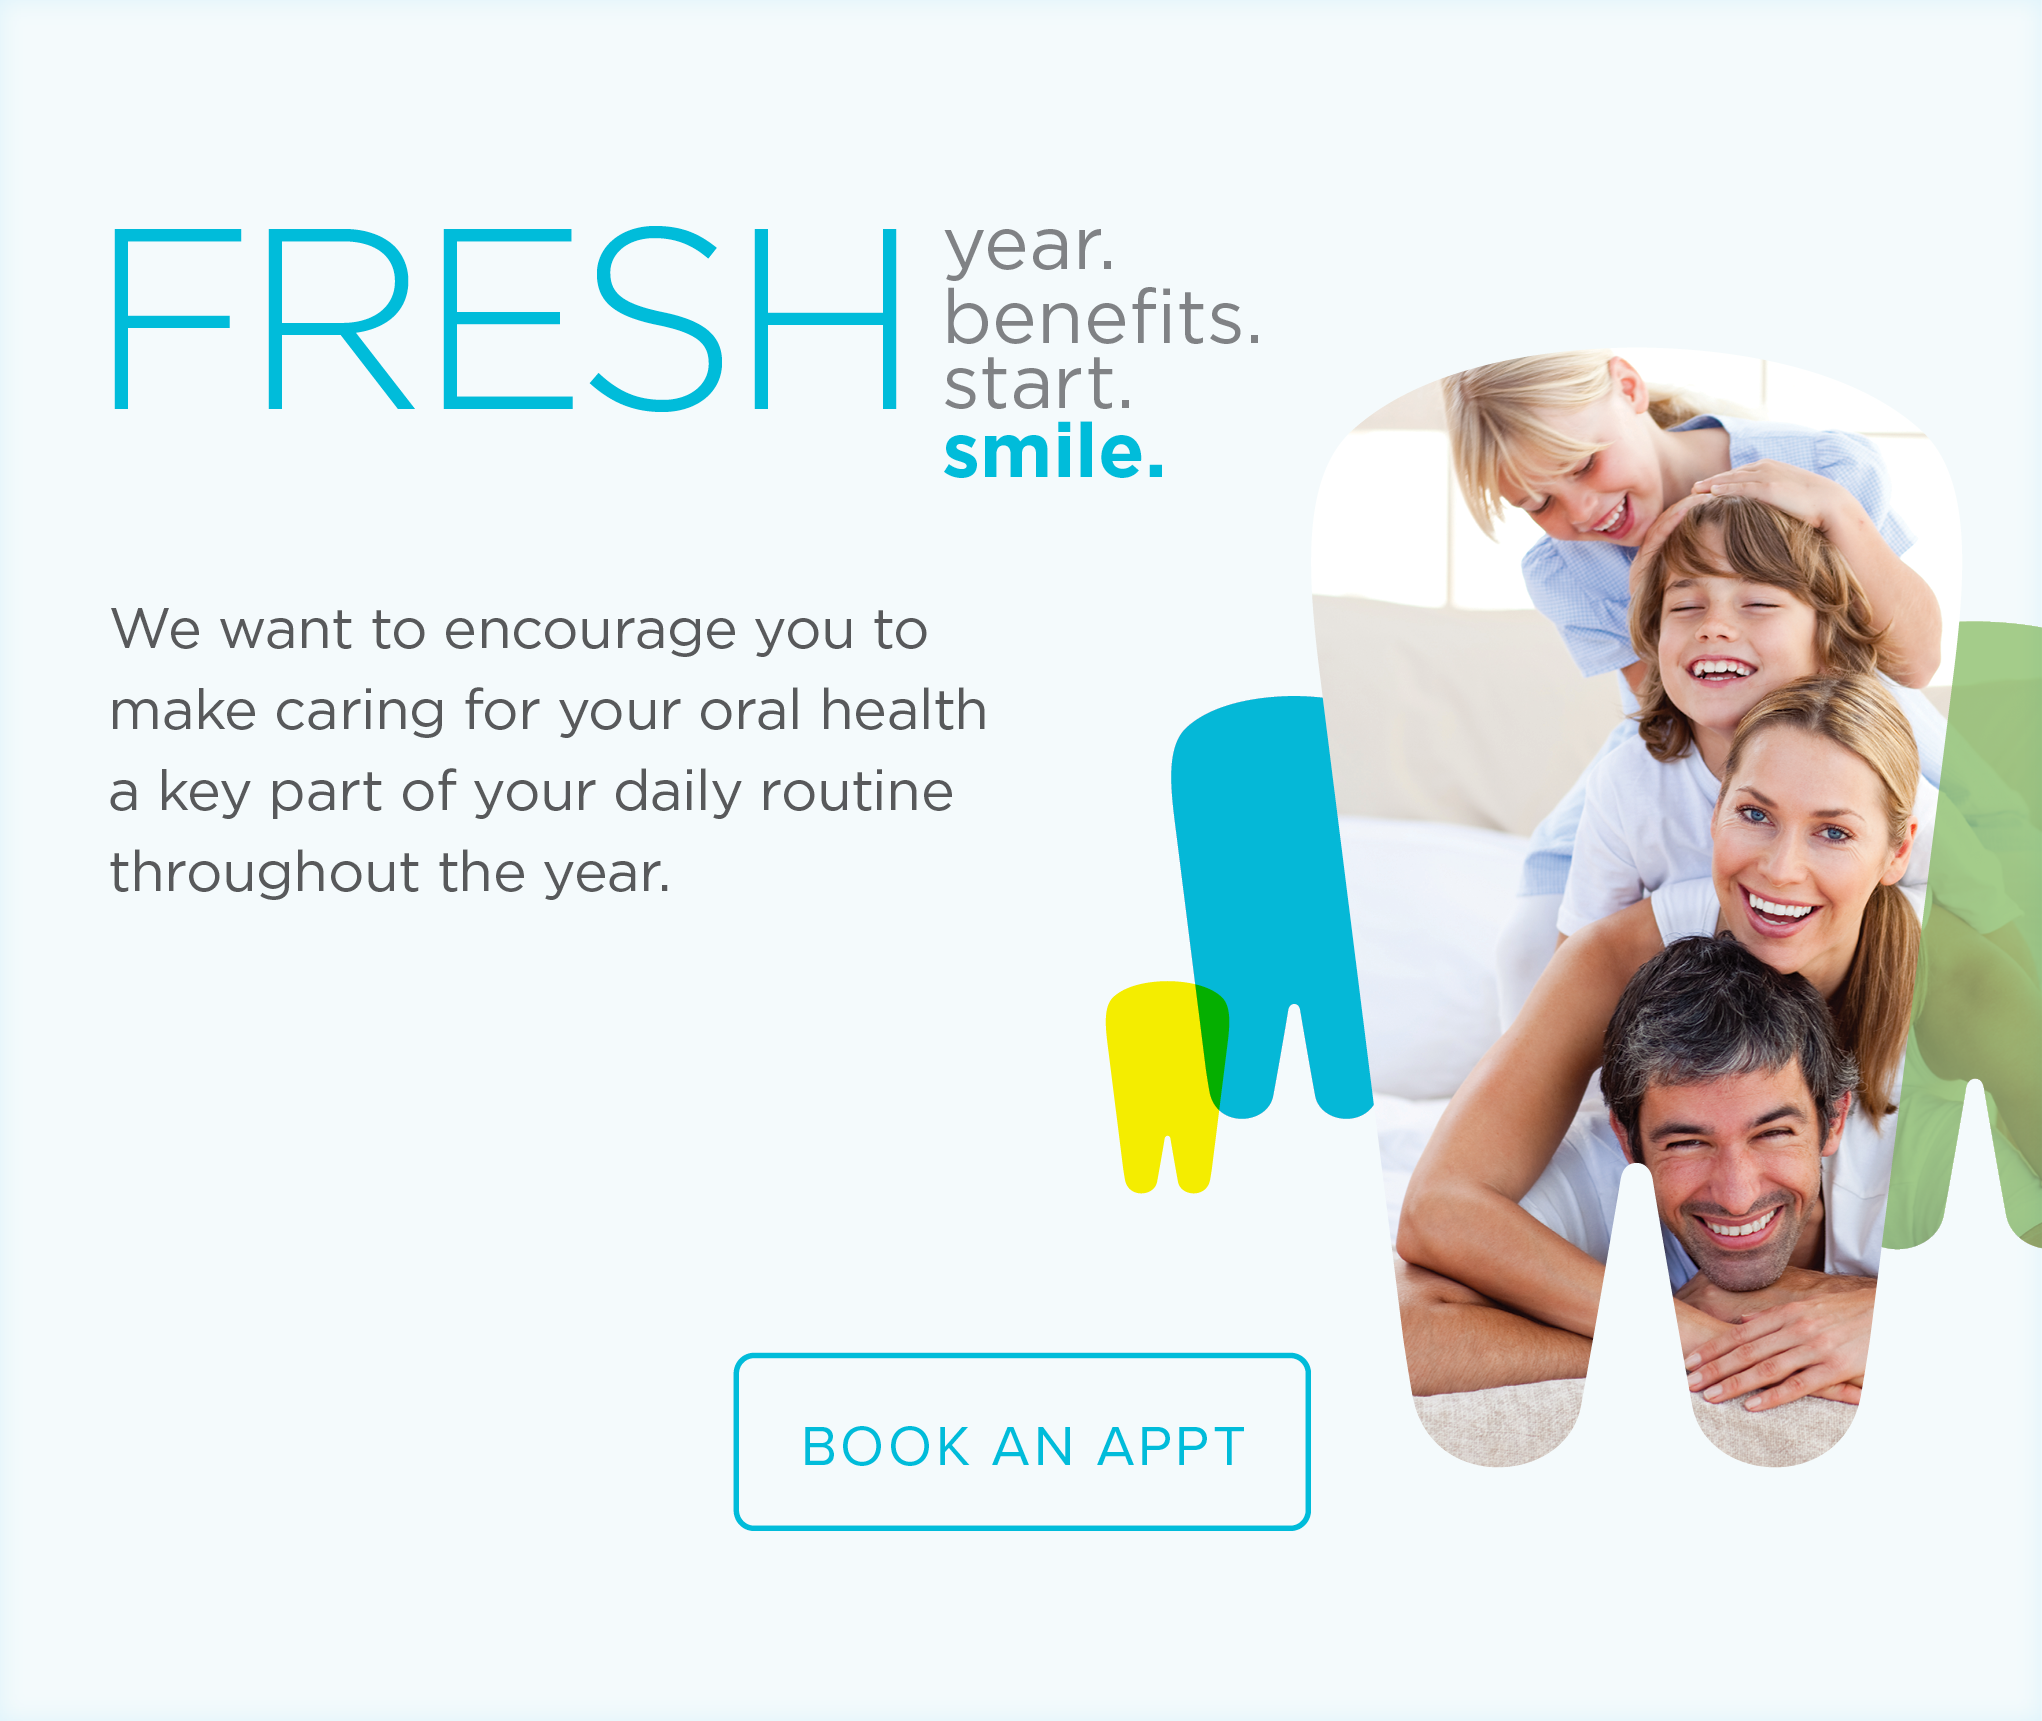 First Street Dental Group and Orthodontics - Make the Most of Your Benefits